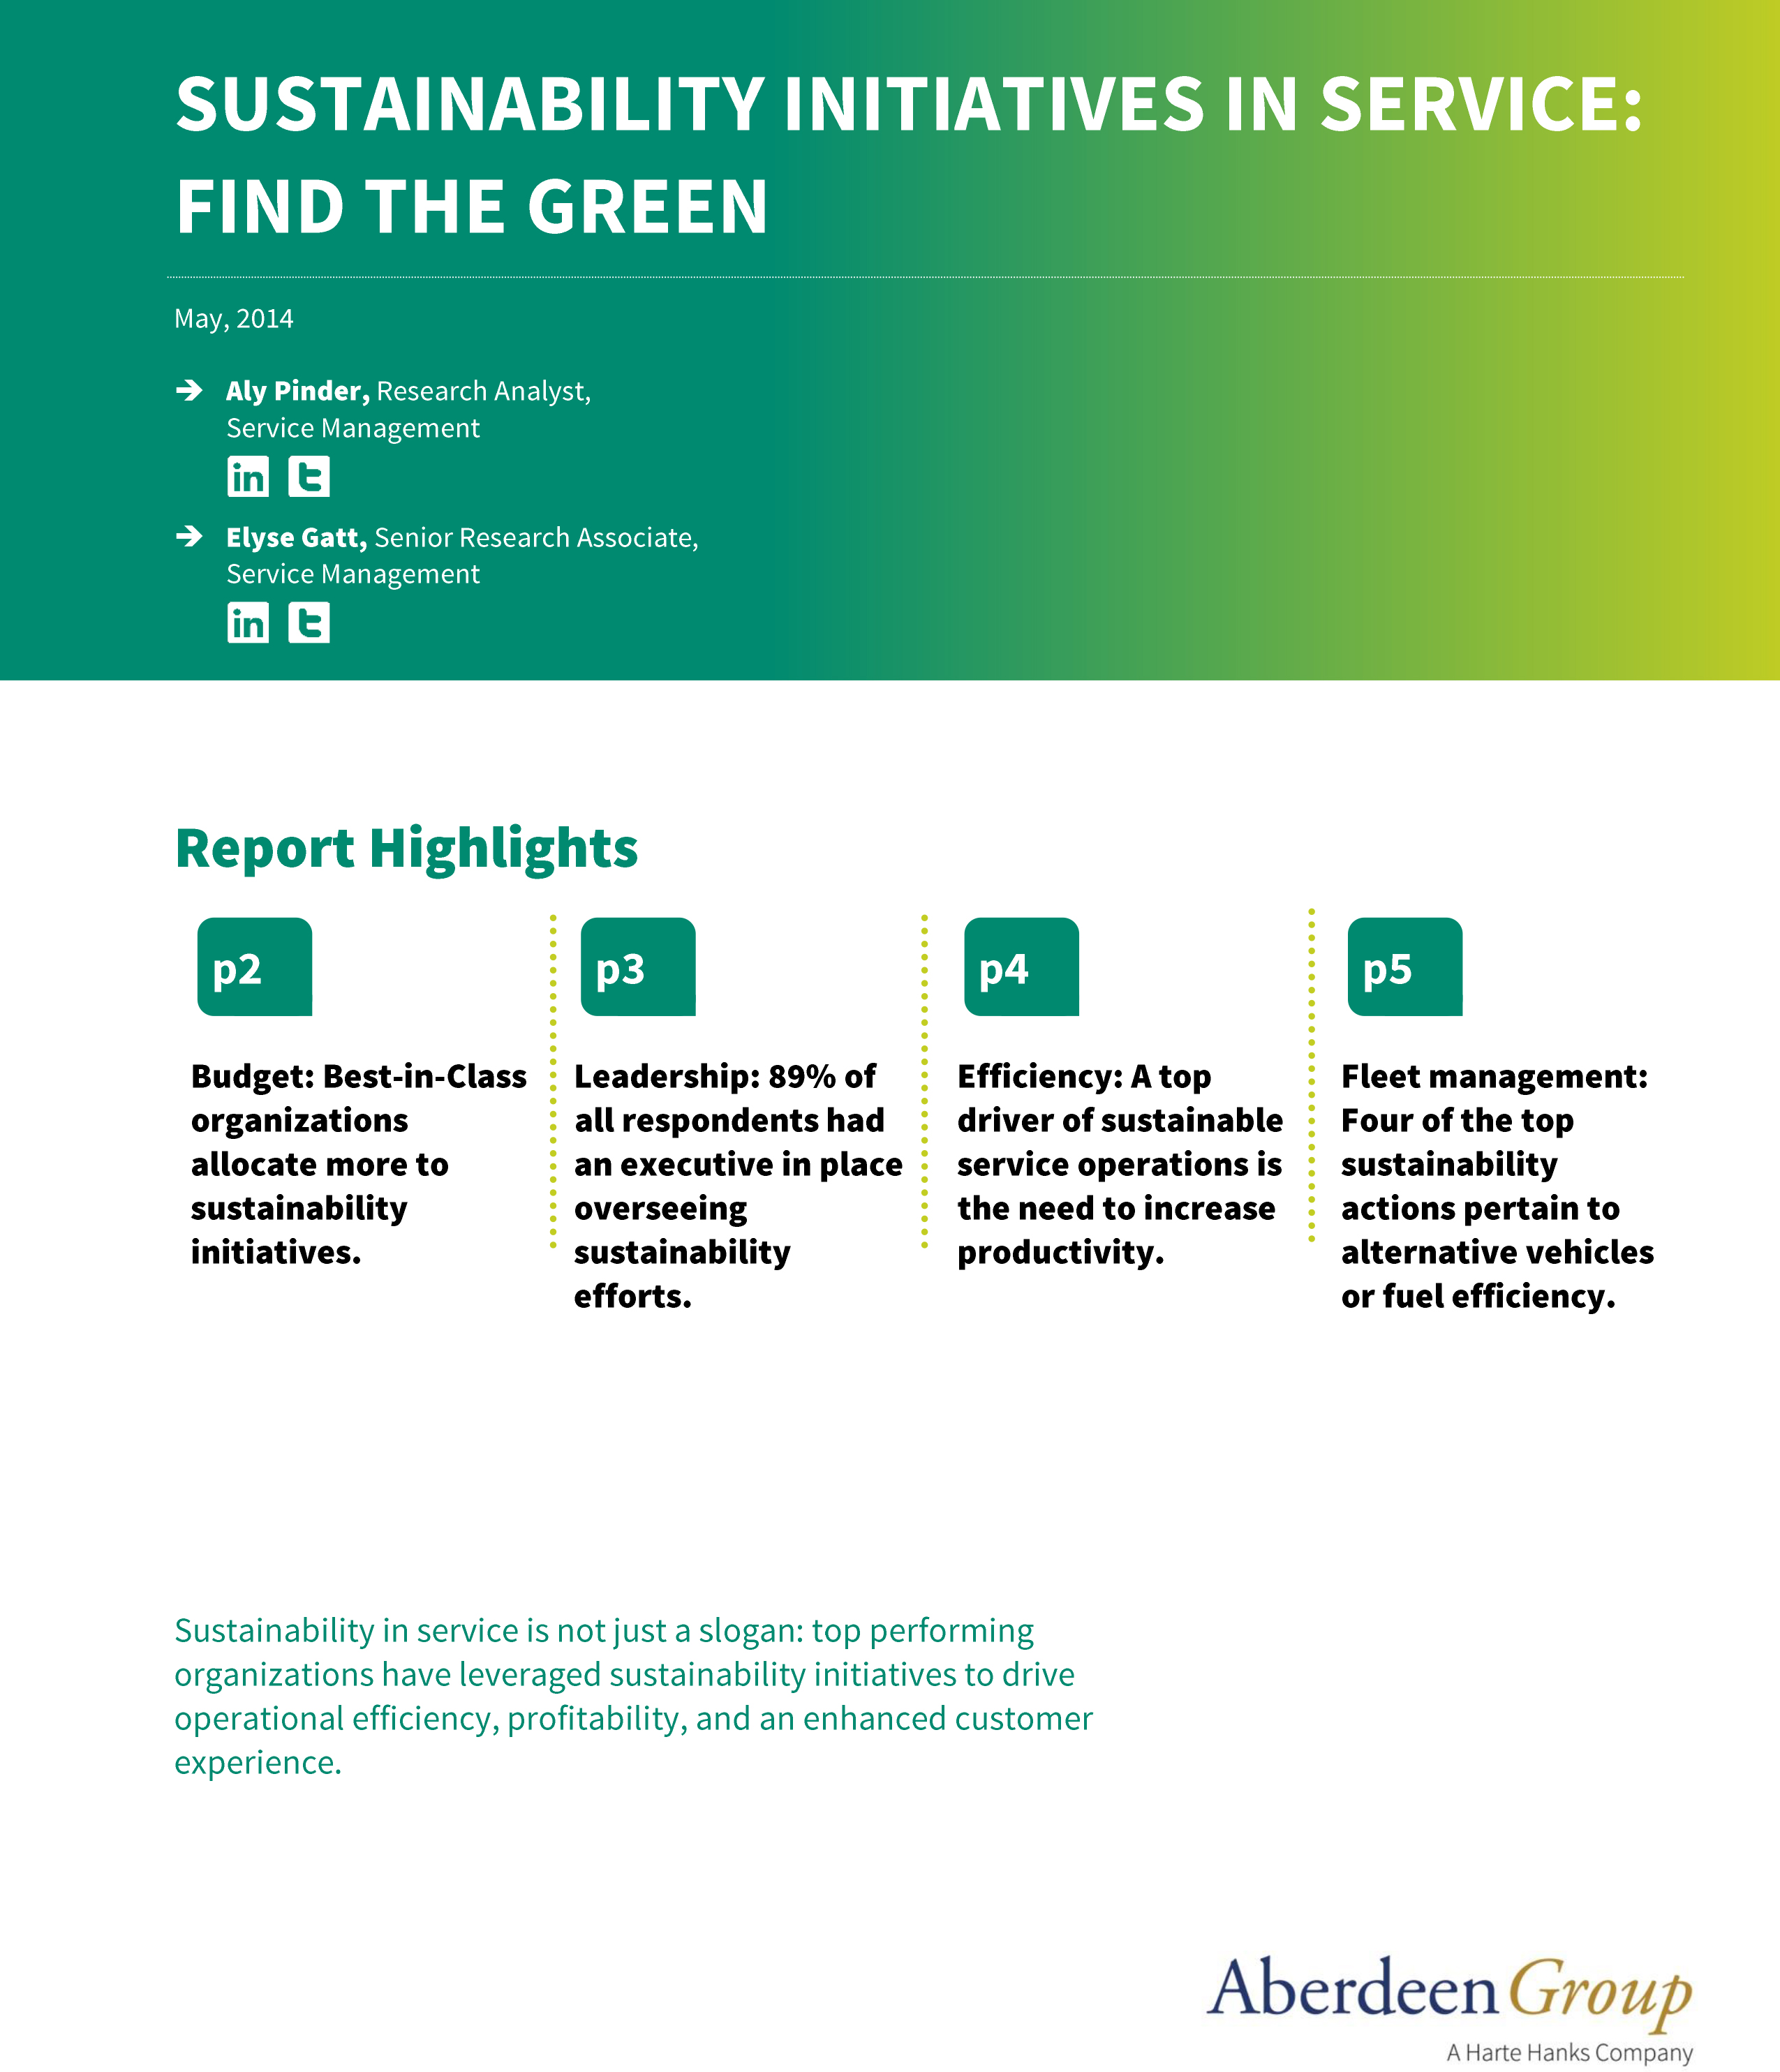 Free White Paper: Find the Green - Sustainability Initiatives in Service